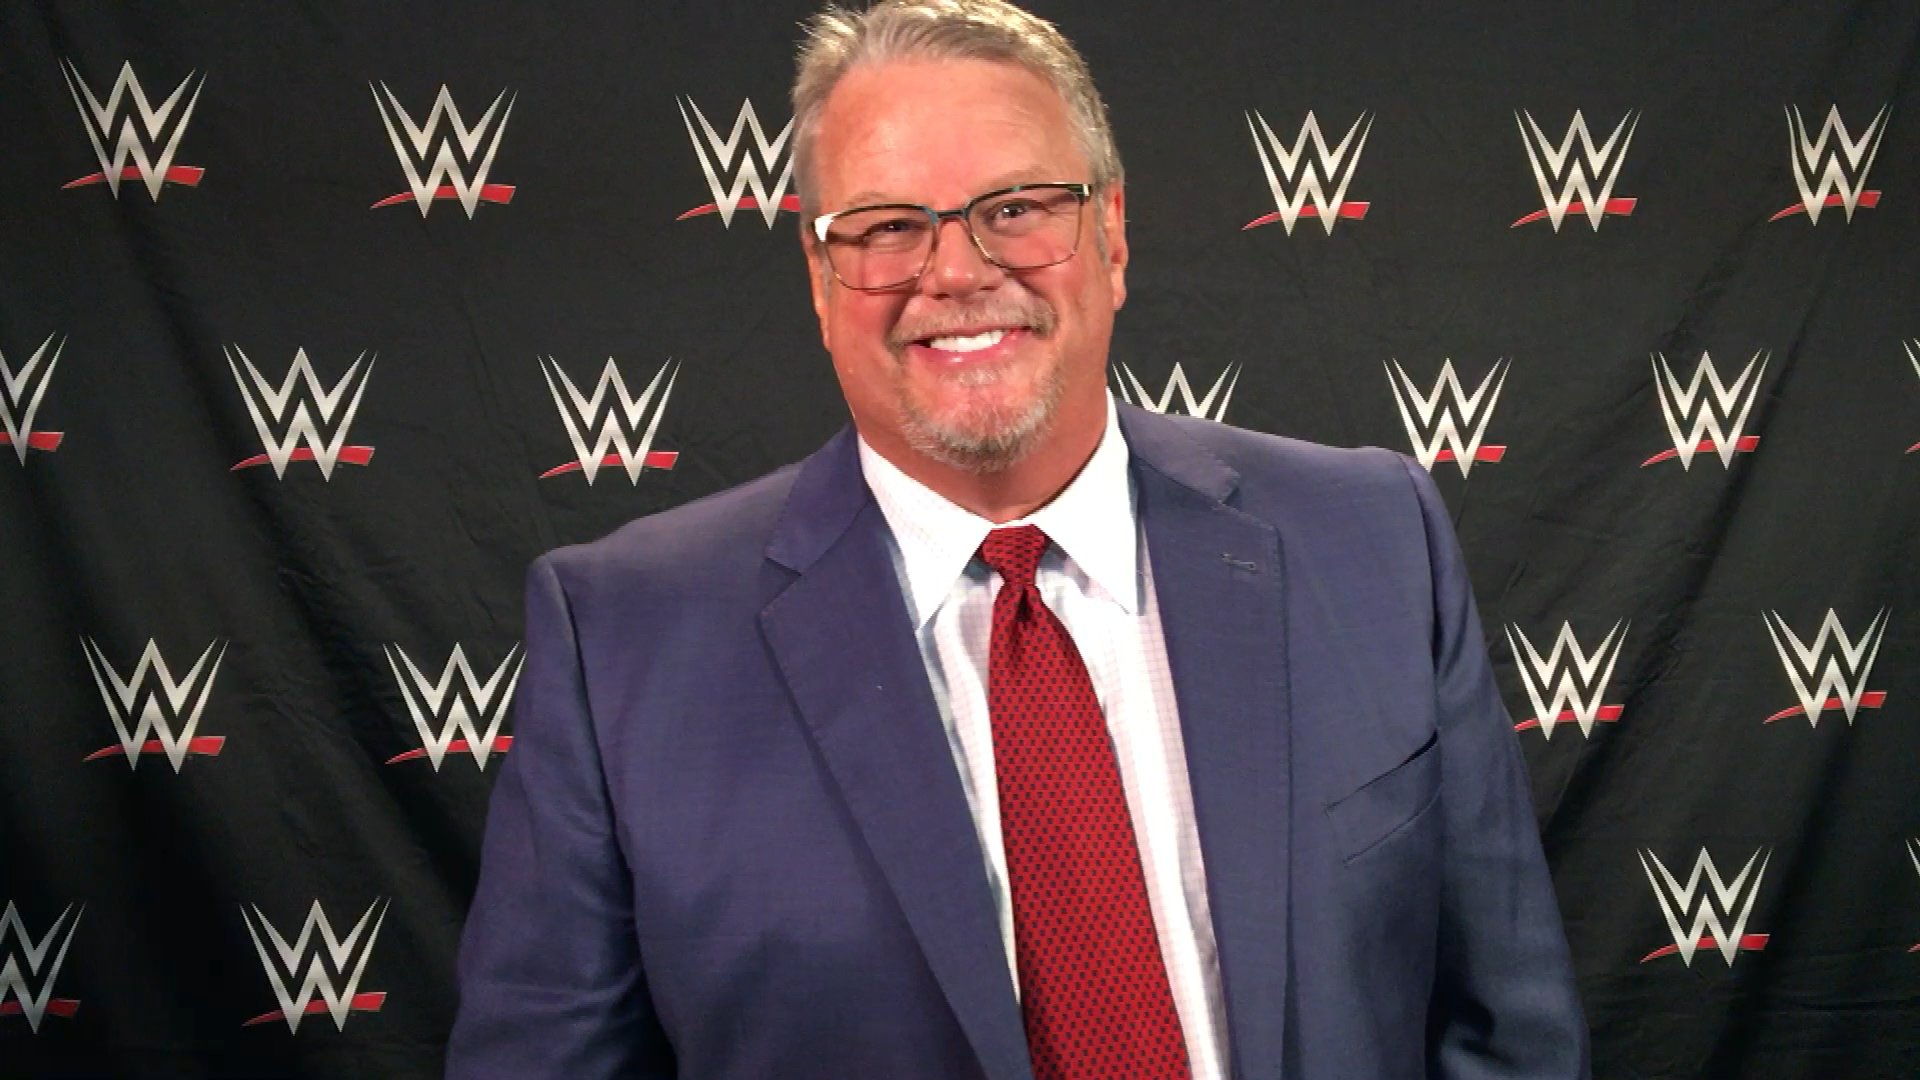 Bruce Prichard replaces Eric Bischoff as Executive Director of SmackDown